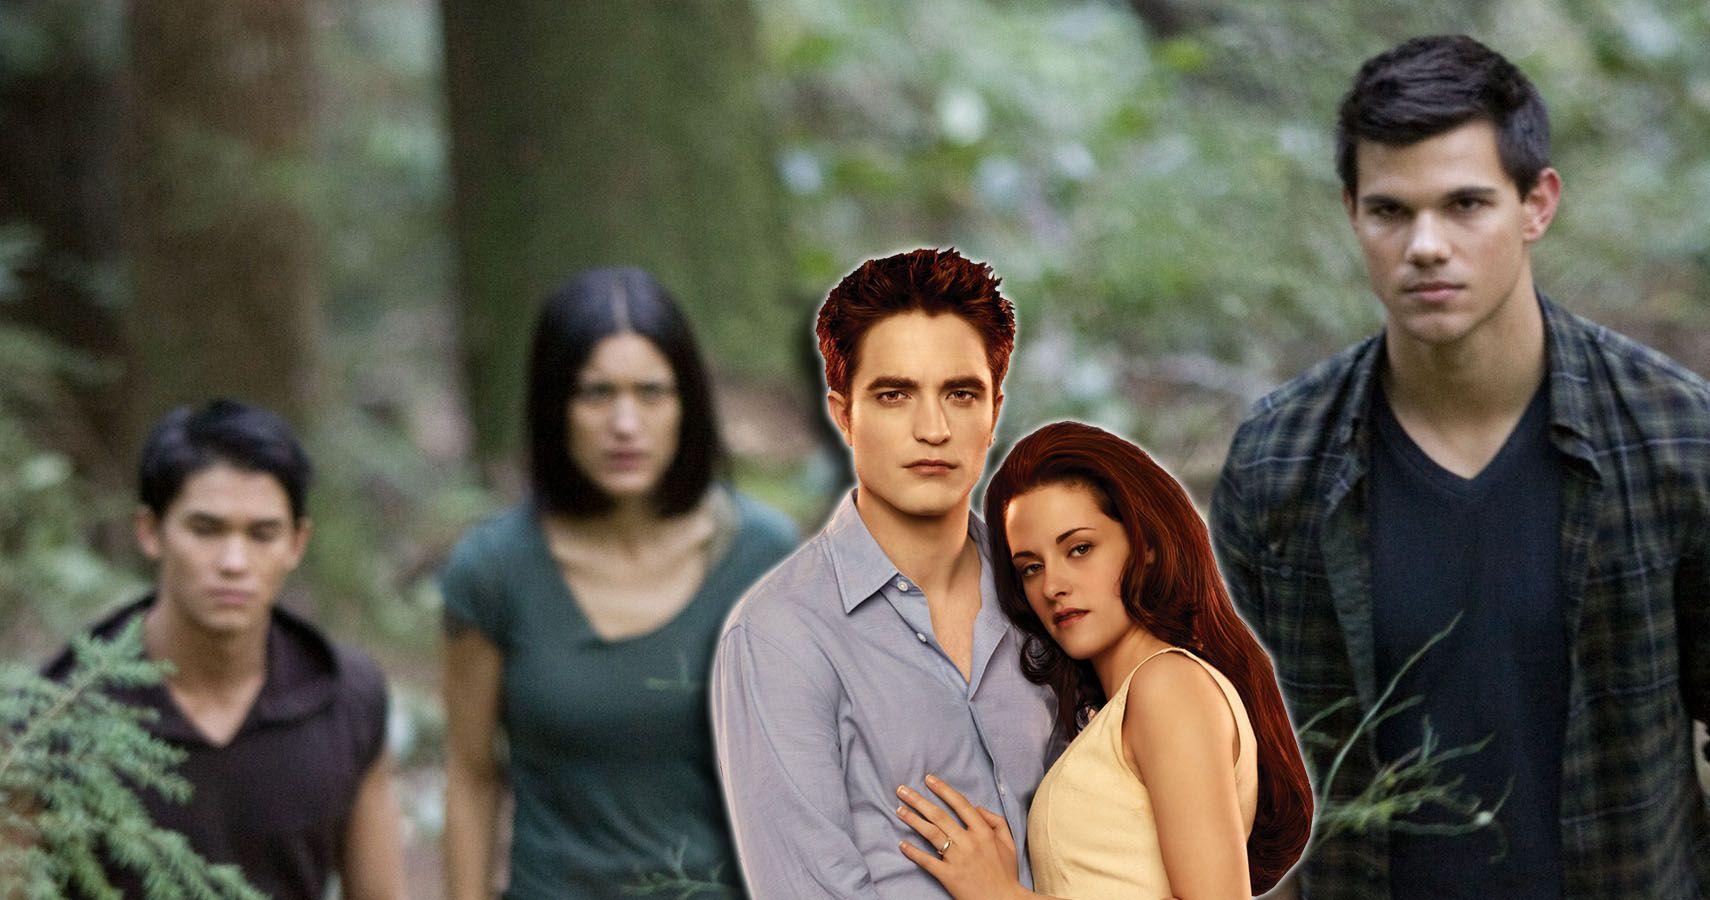 Twilight: 20 Wild Details Only True Fans Know About Leah Clearwater